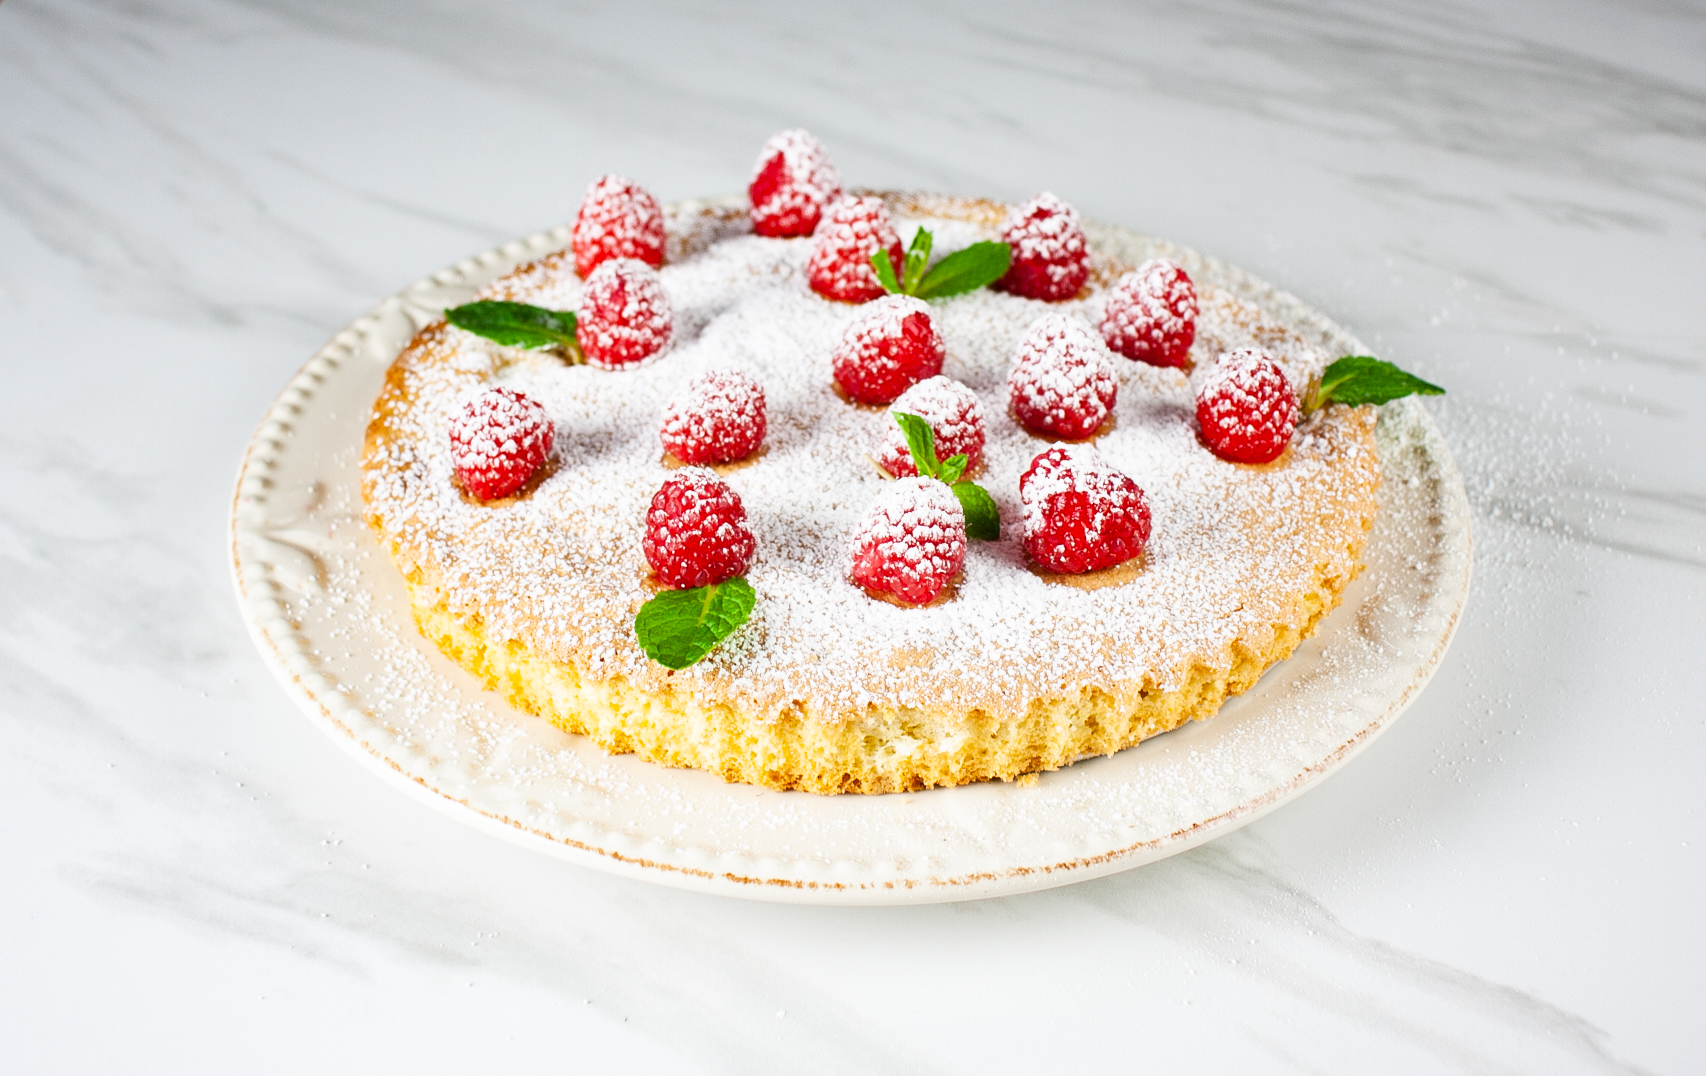 cake with raspberries